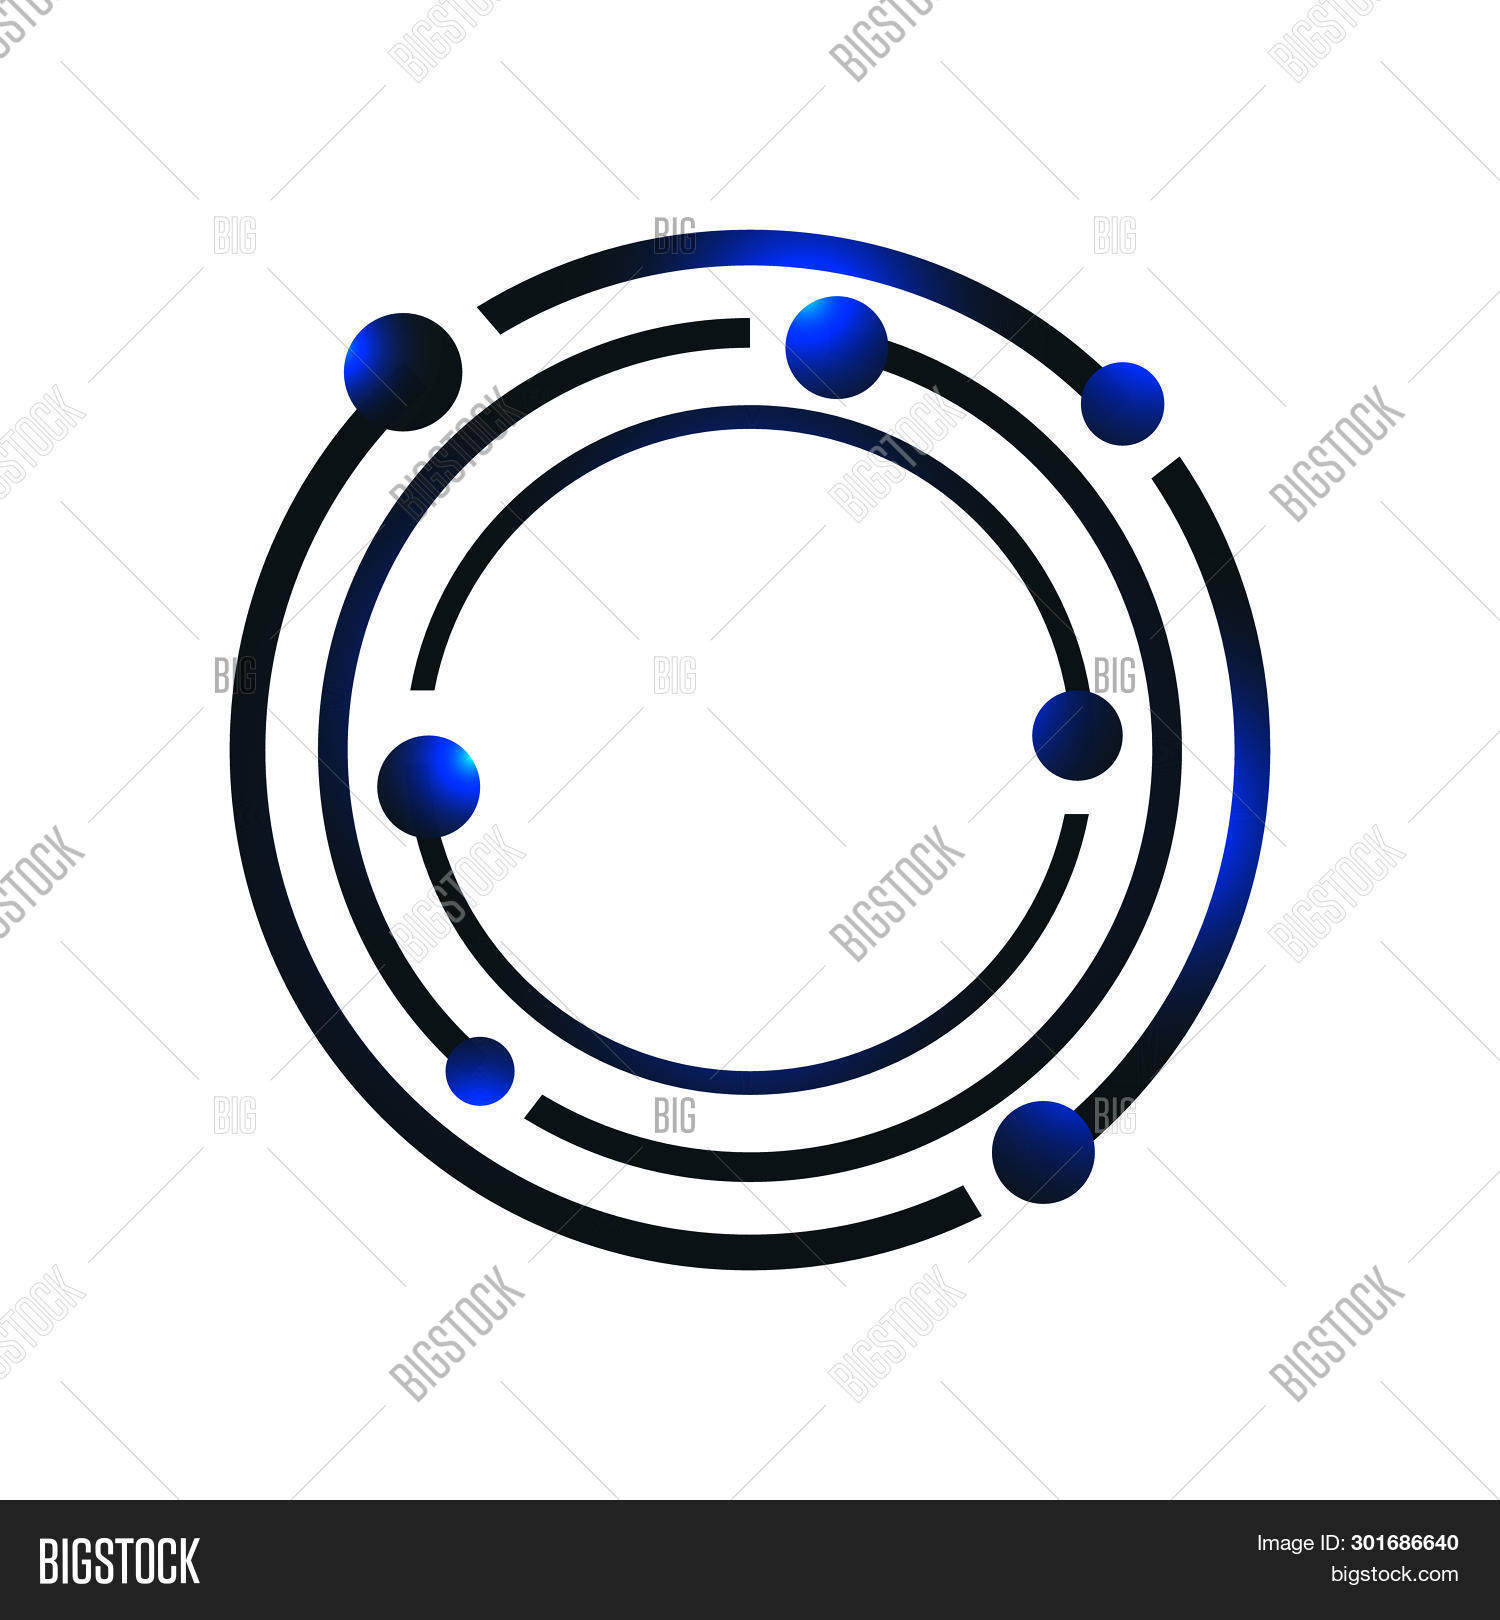 abstract,arrow,art,background,banner,blue,business,button,circle,communication,computer,concept,connect,connection,creative,data,design,digital,element,global,graphic,group,icon,idea,illustration,information,internet,isolated,label,layout,line,modern,network,pattern,people,presentation,round,set,shape,sign,social,symbol,team,teamwork,technology,template,vector,web,website,white